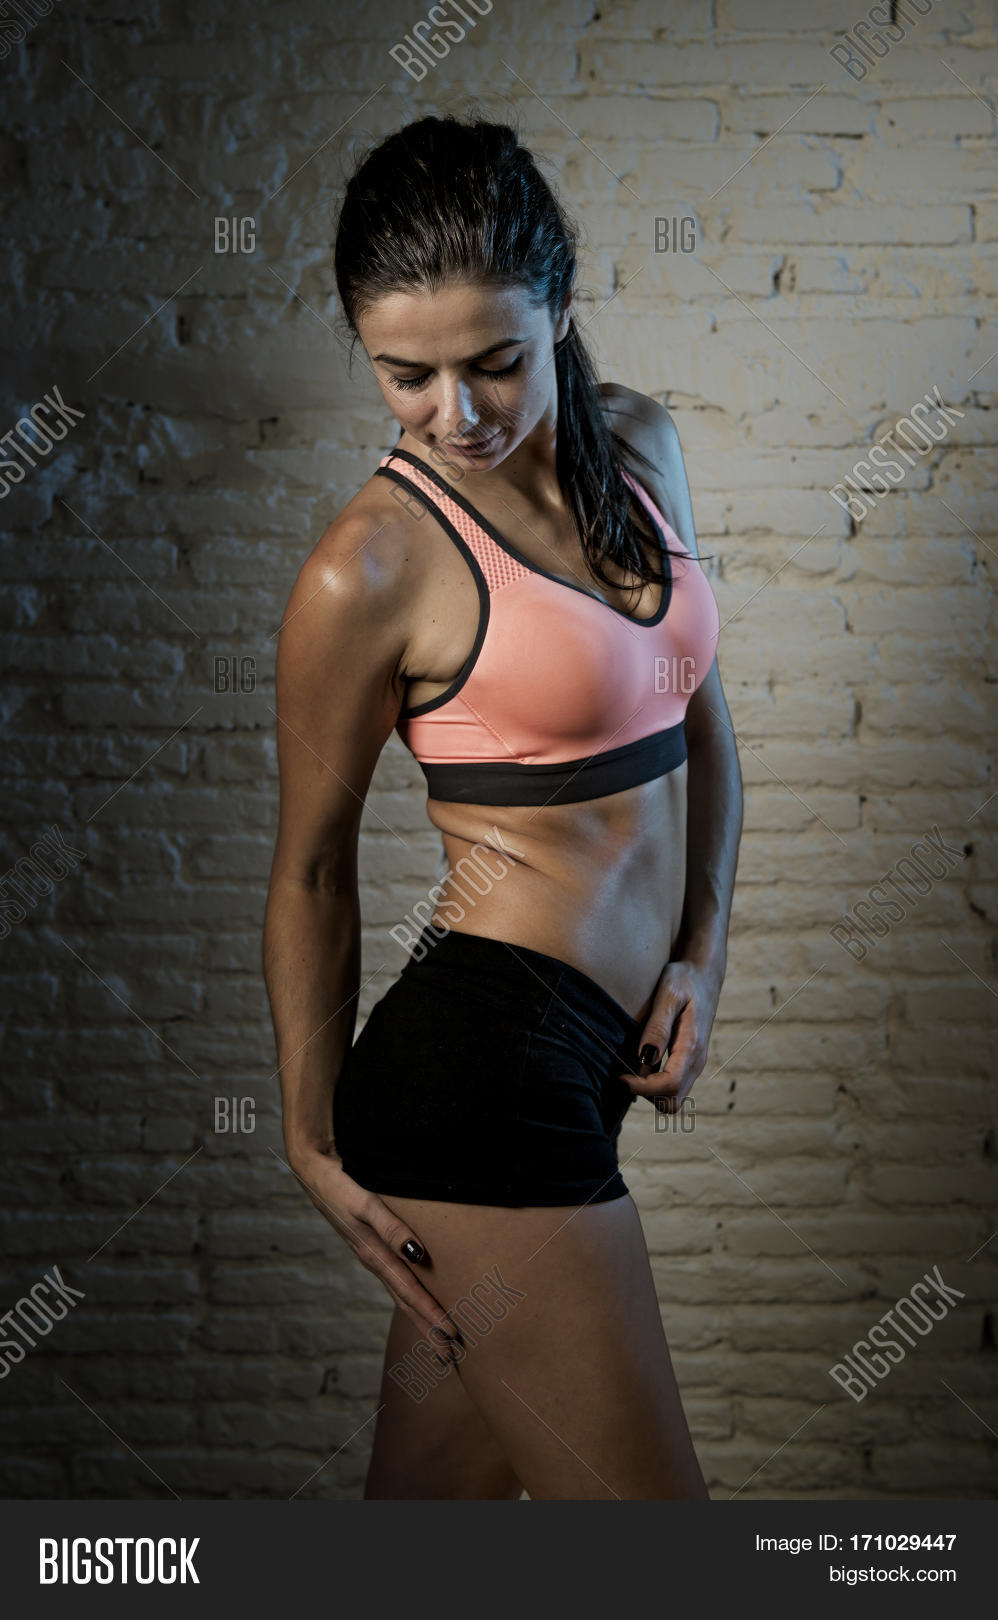 e83a1ce97 young beautiful and sexy woman in fitness top and shorts with perfect  abdomen posing isolated on